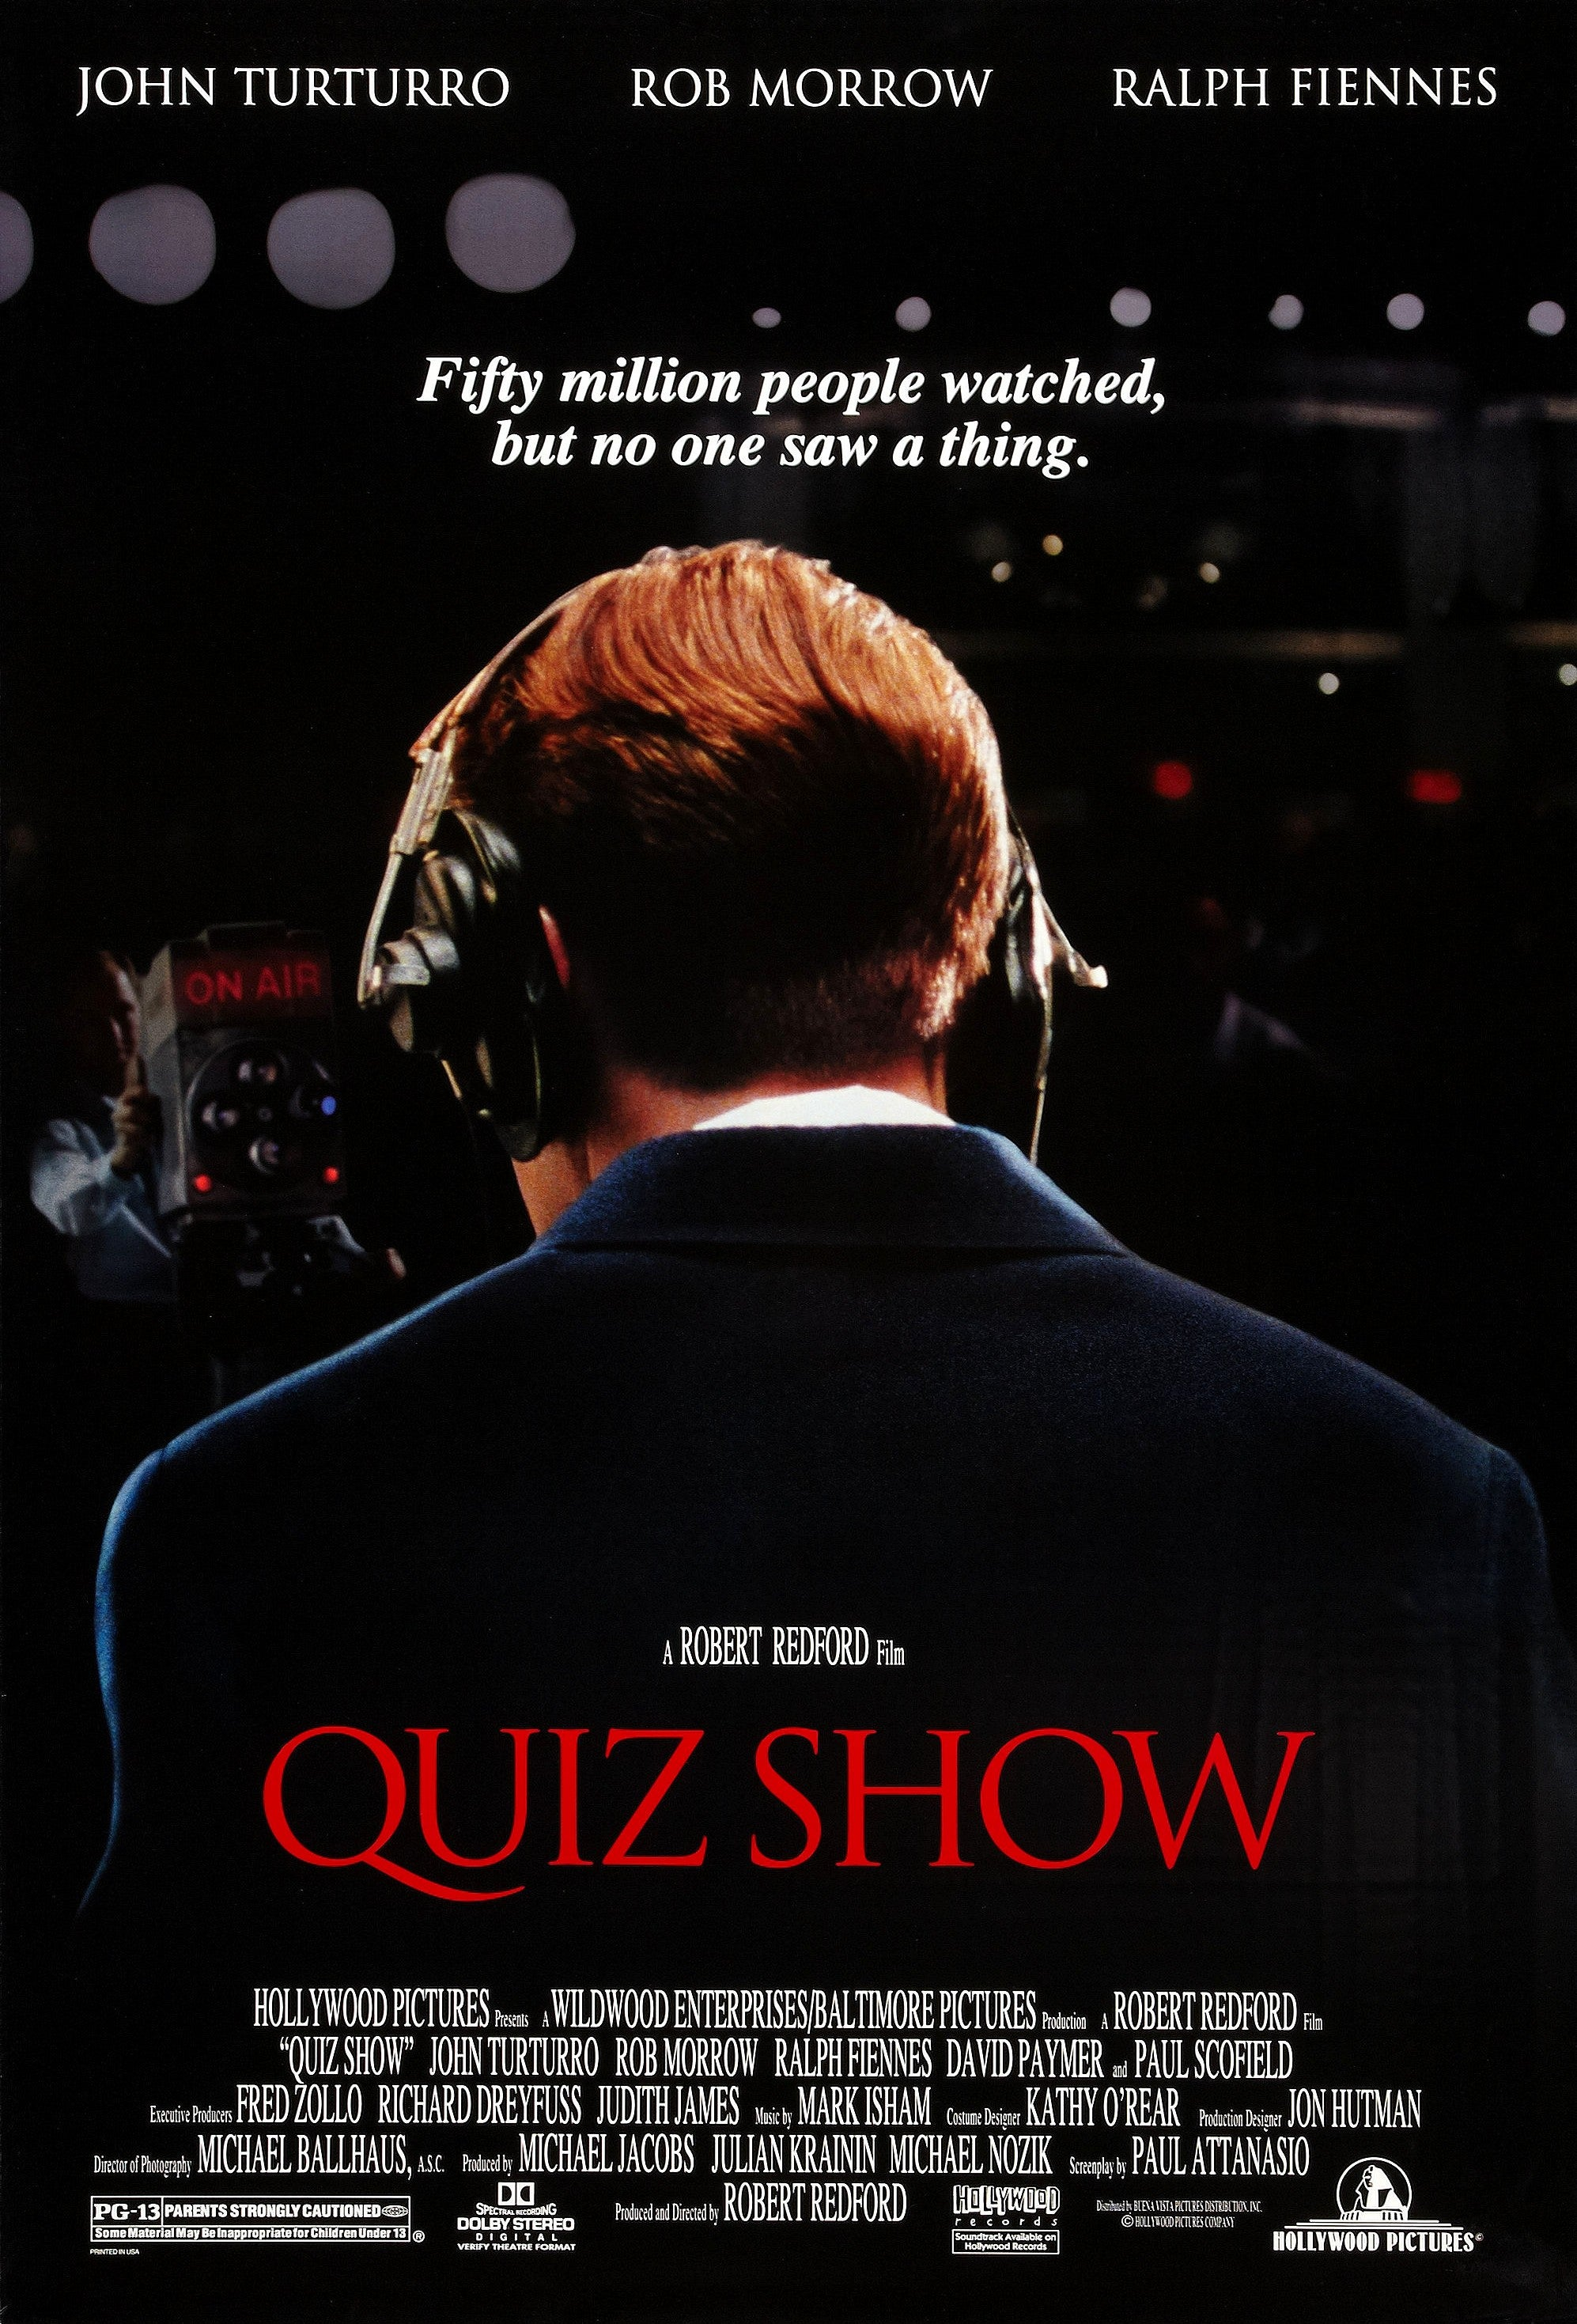 quiz show Define quiz show quiz show synonyms, quiz show pronunciation, quiz show translation, english dictionary definition of quiz show n a television or radio program in which the contestants' knowledge is tested by questioning, with some contestants winning money or prizes.